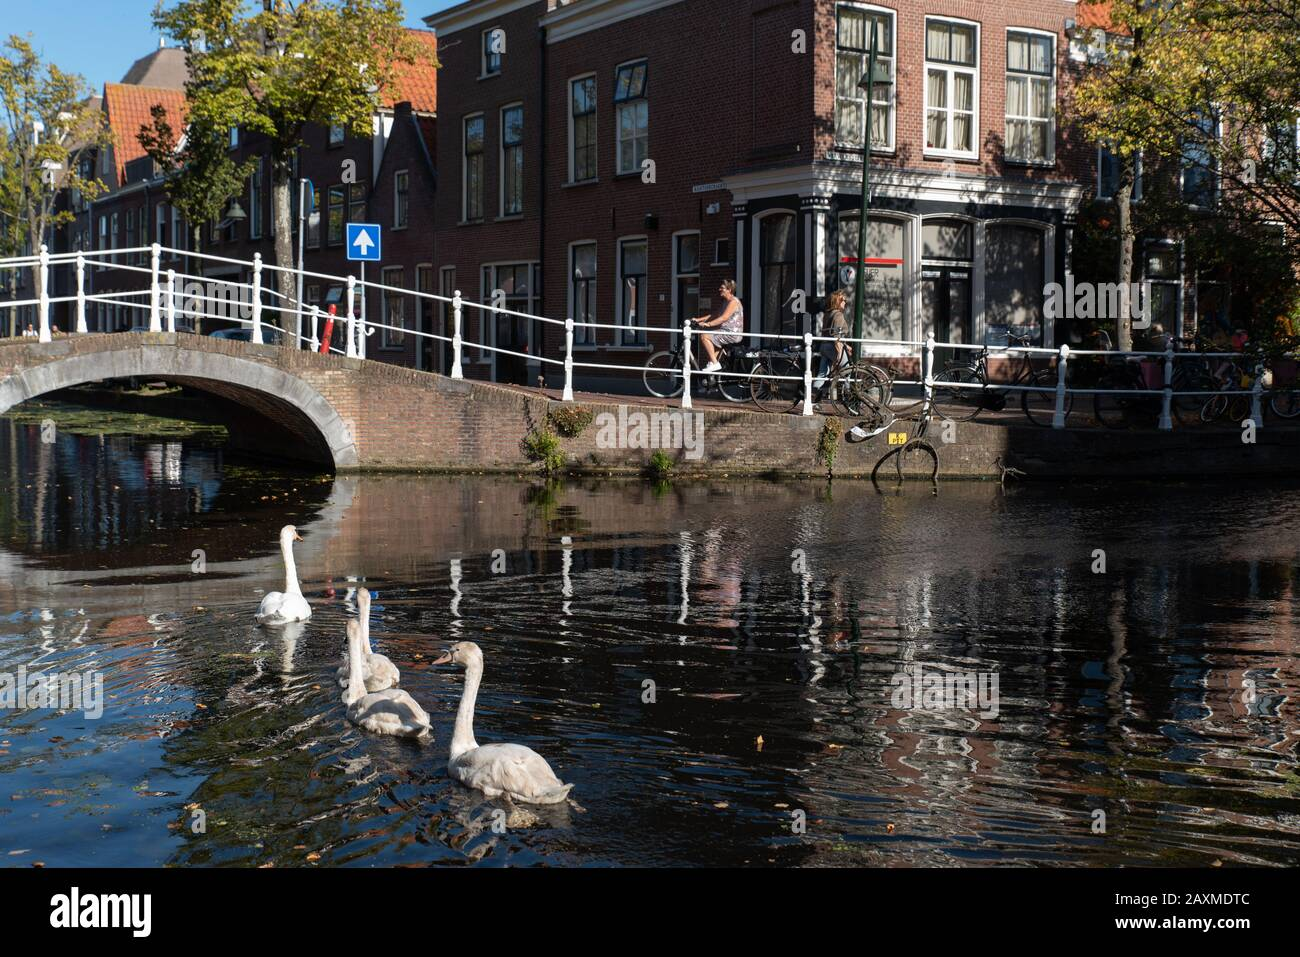 In a typical Dutch scene, young swans follow one of their parents on a canal, Delft, Netherlands. Stock Photo